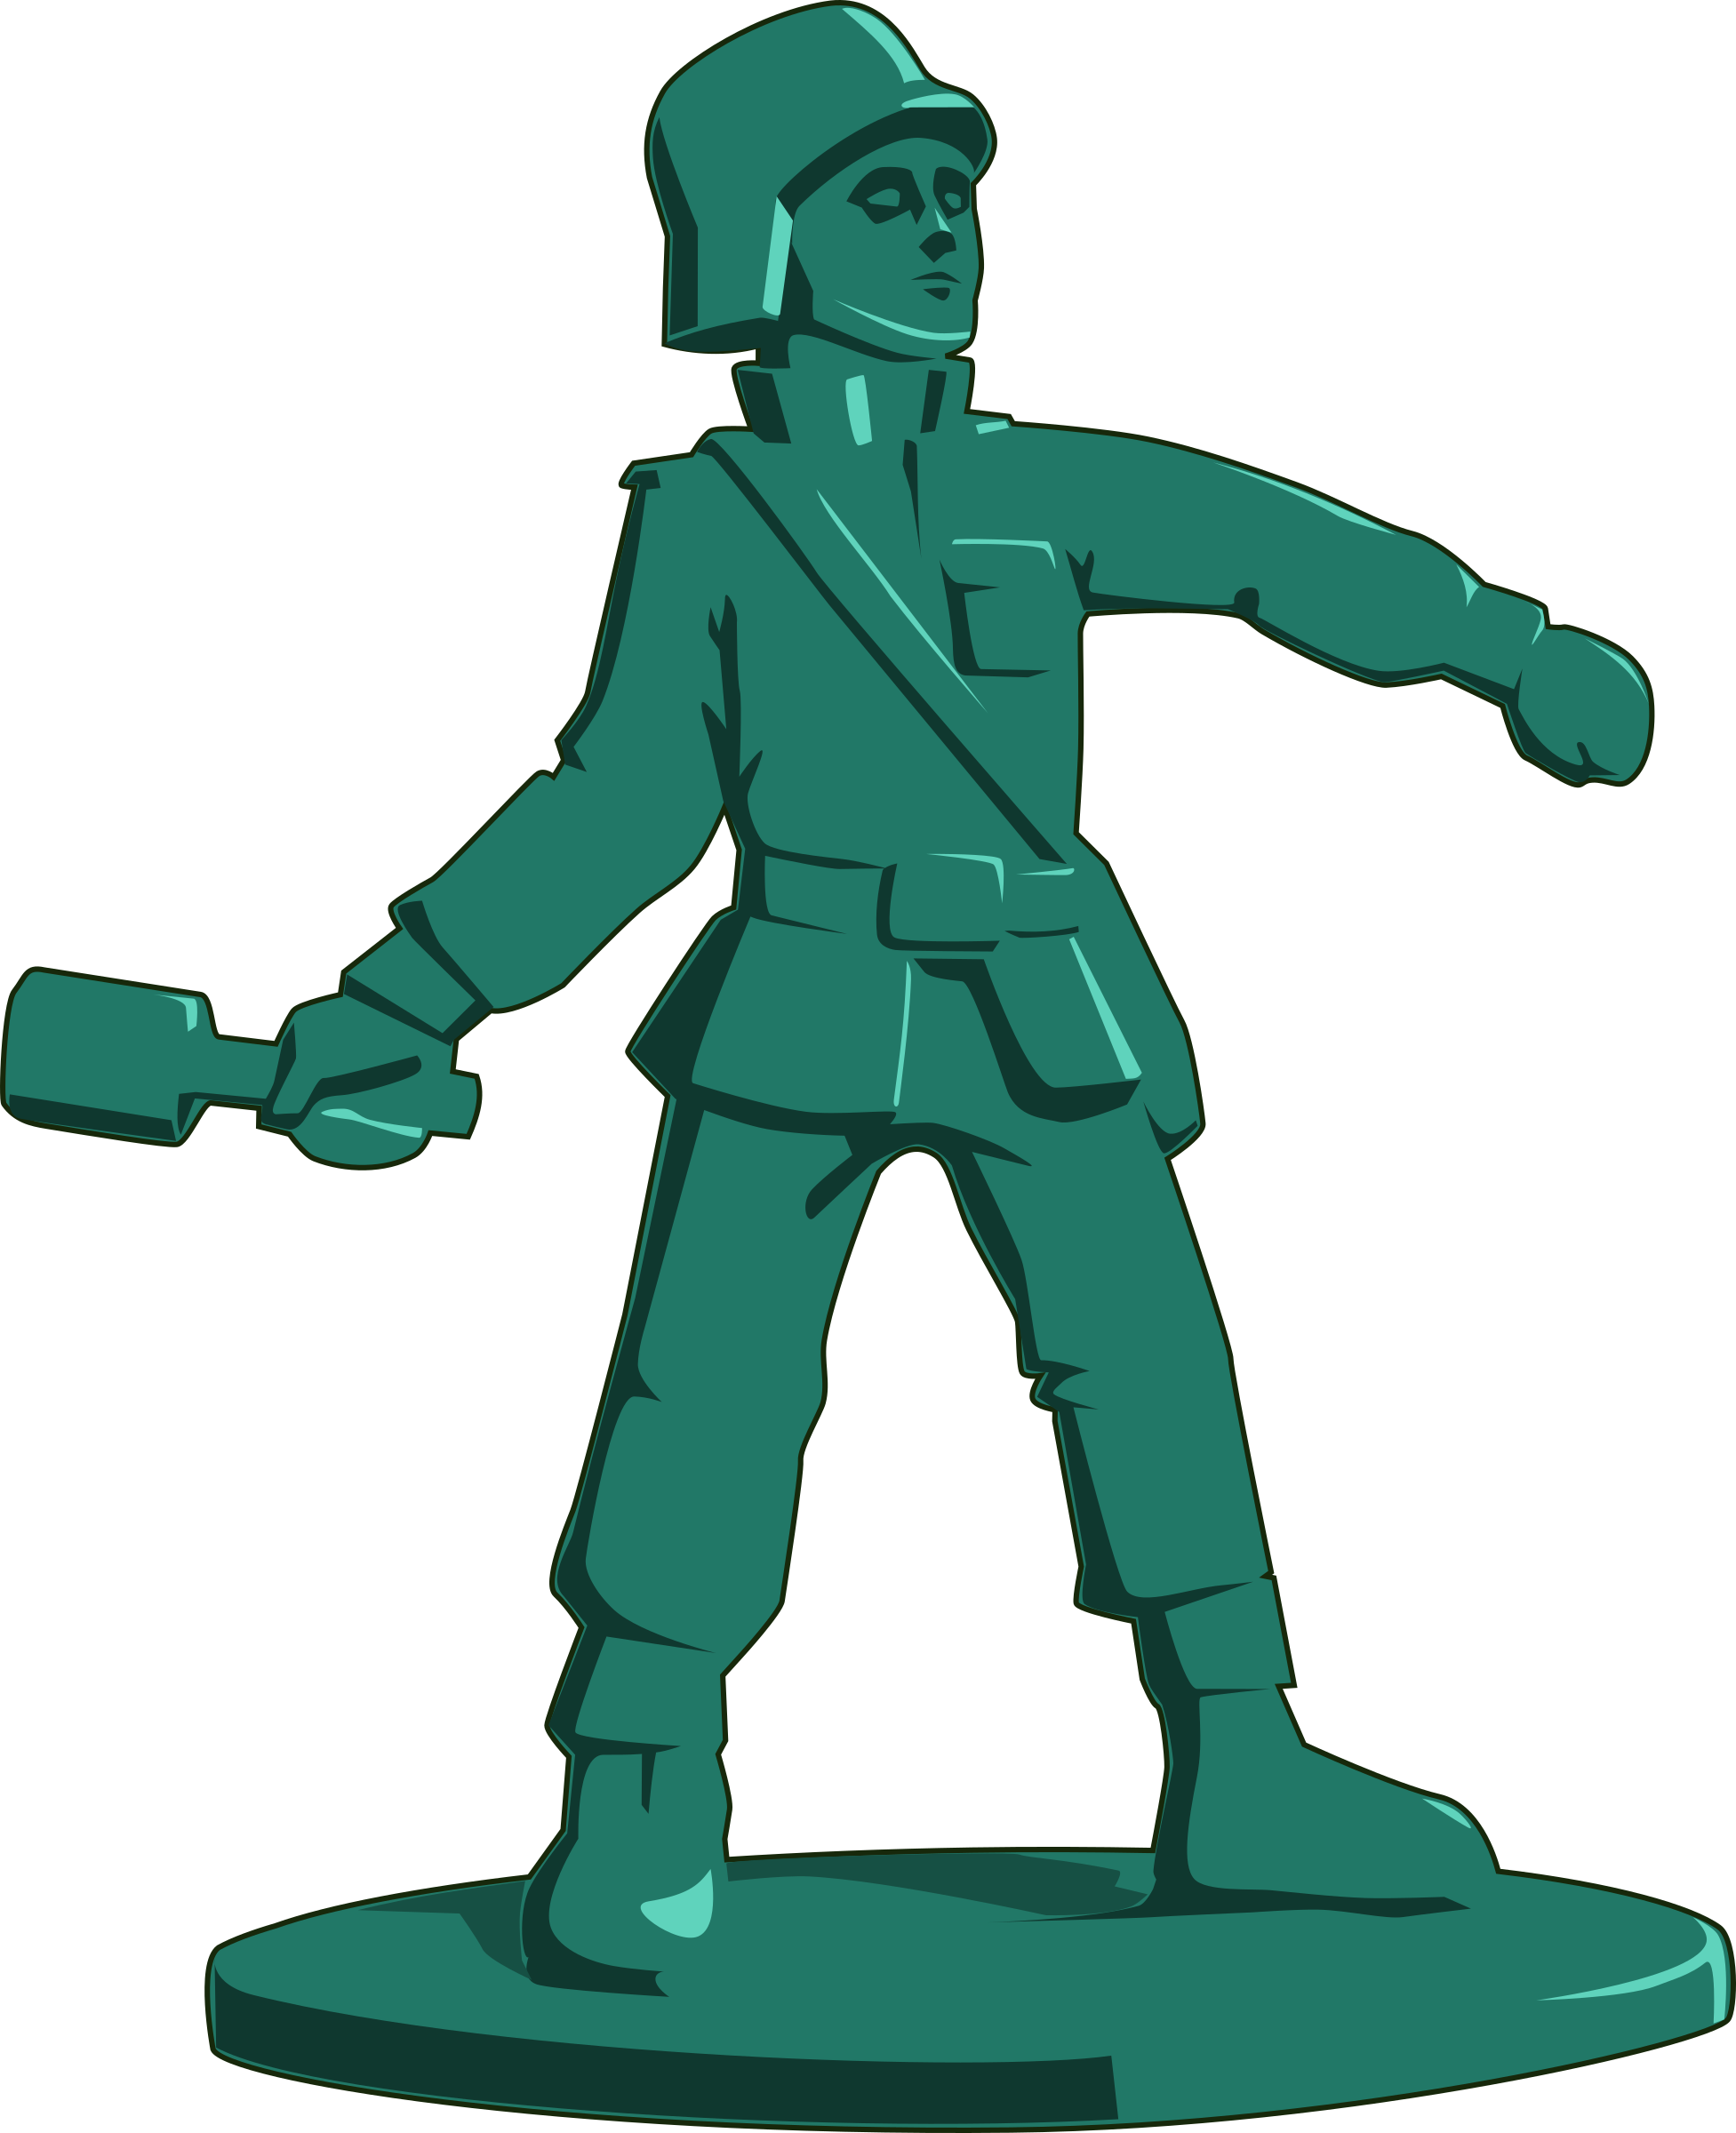 Clipart person toy. Soldier big image png